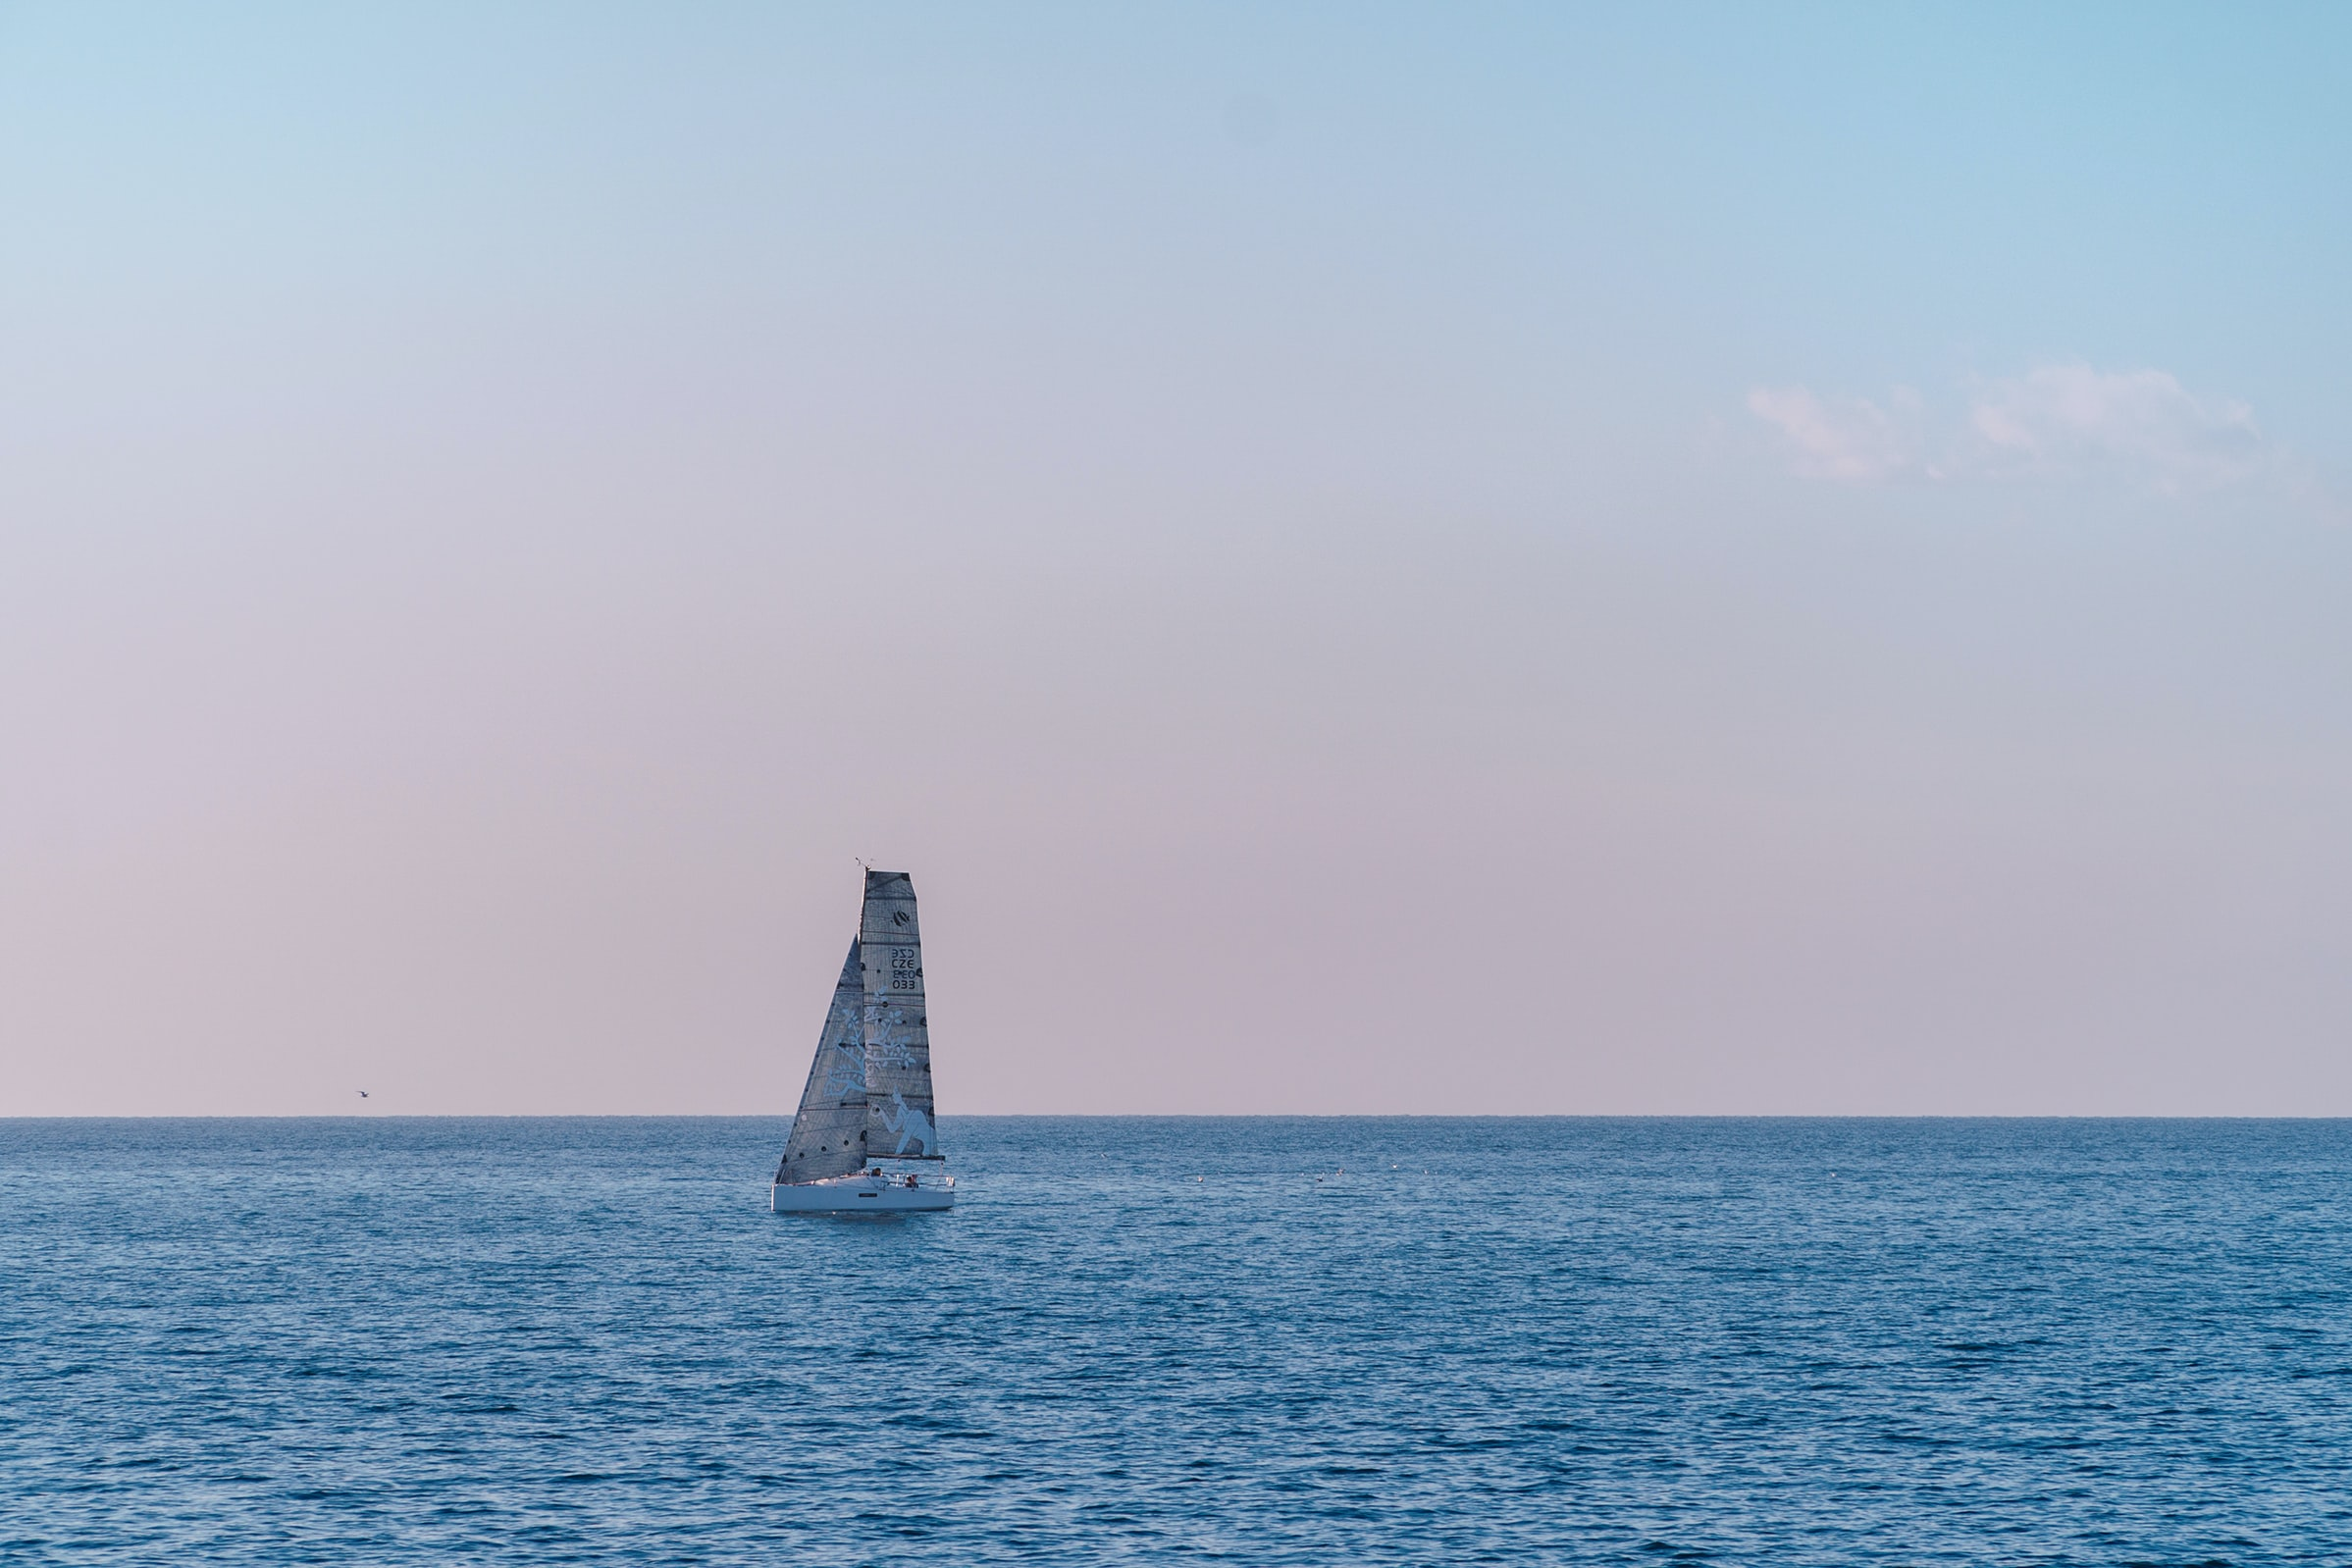 white sailboat on ocean during daytime